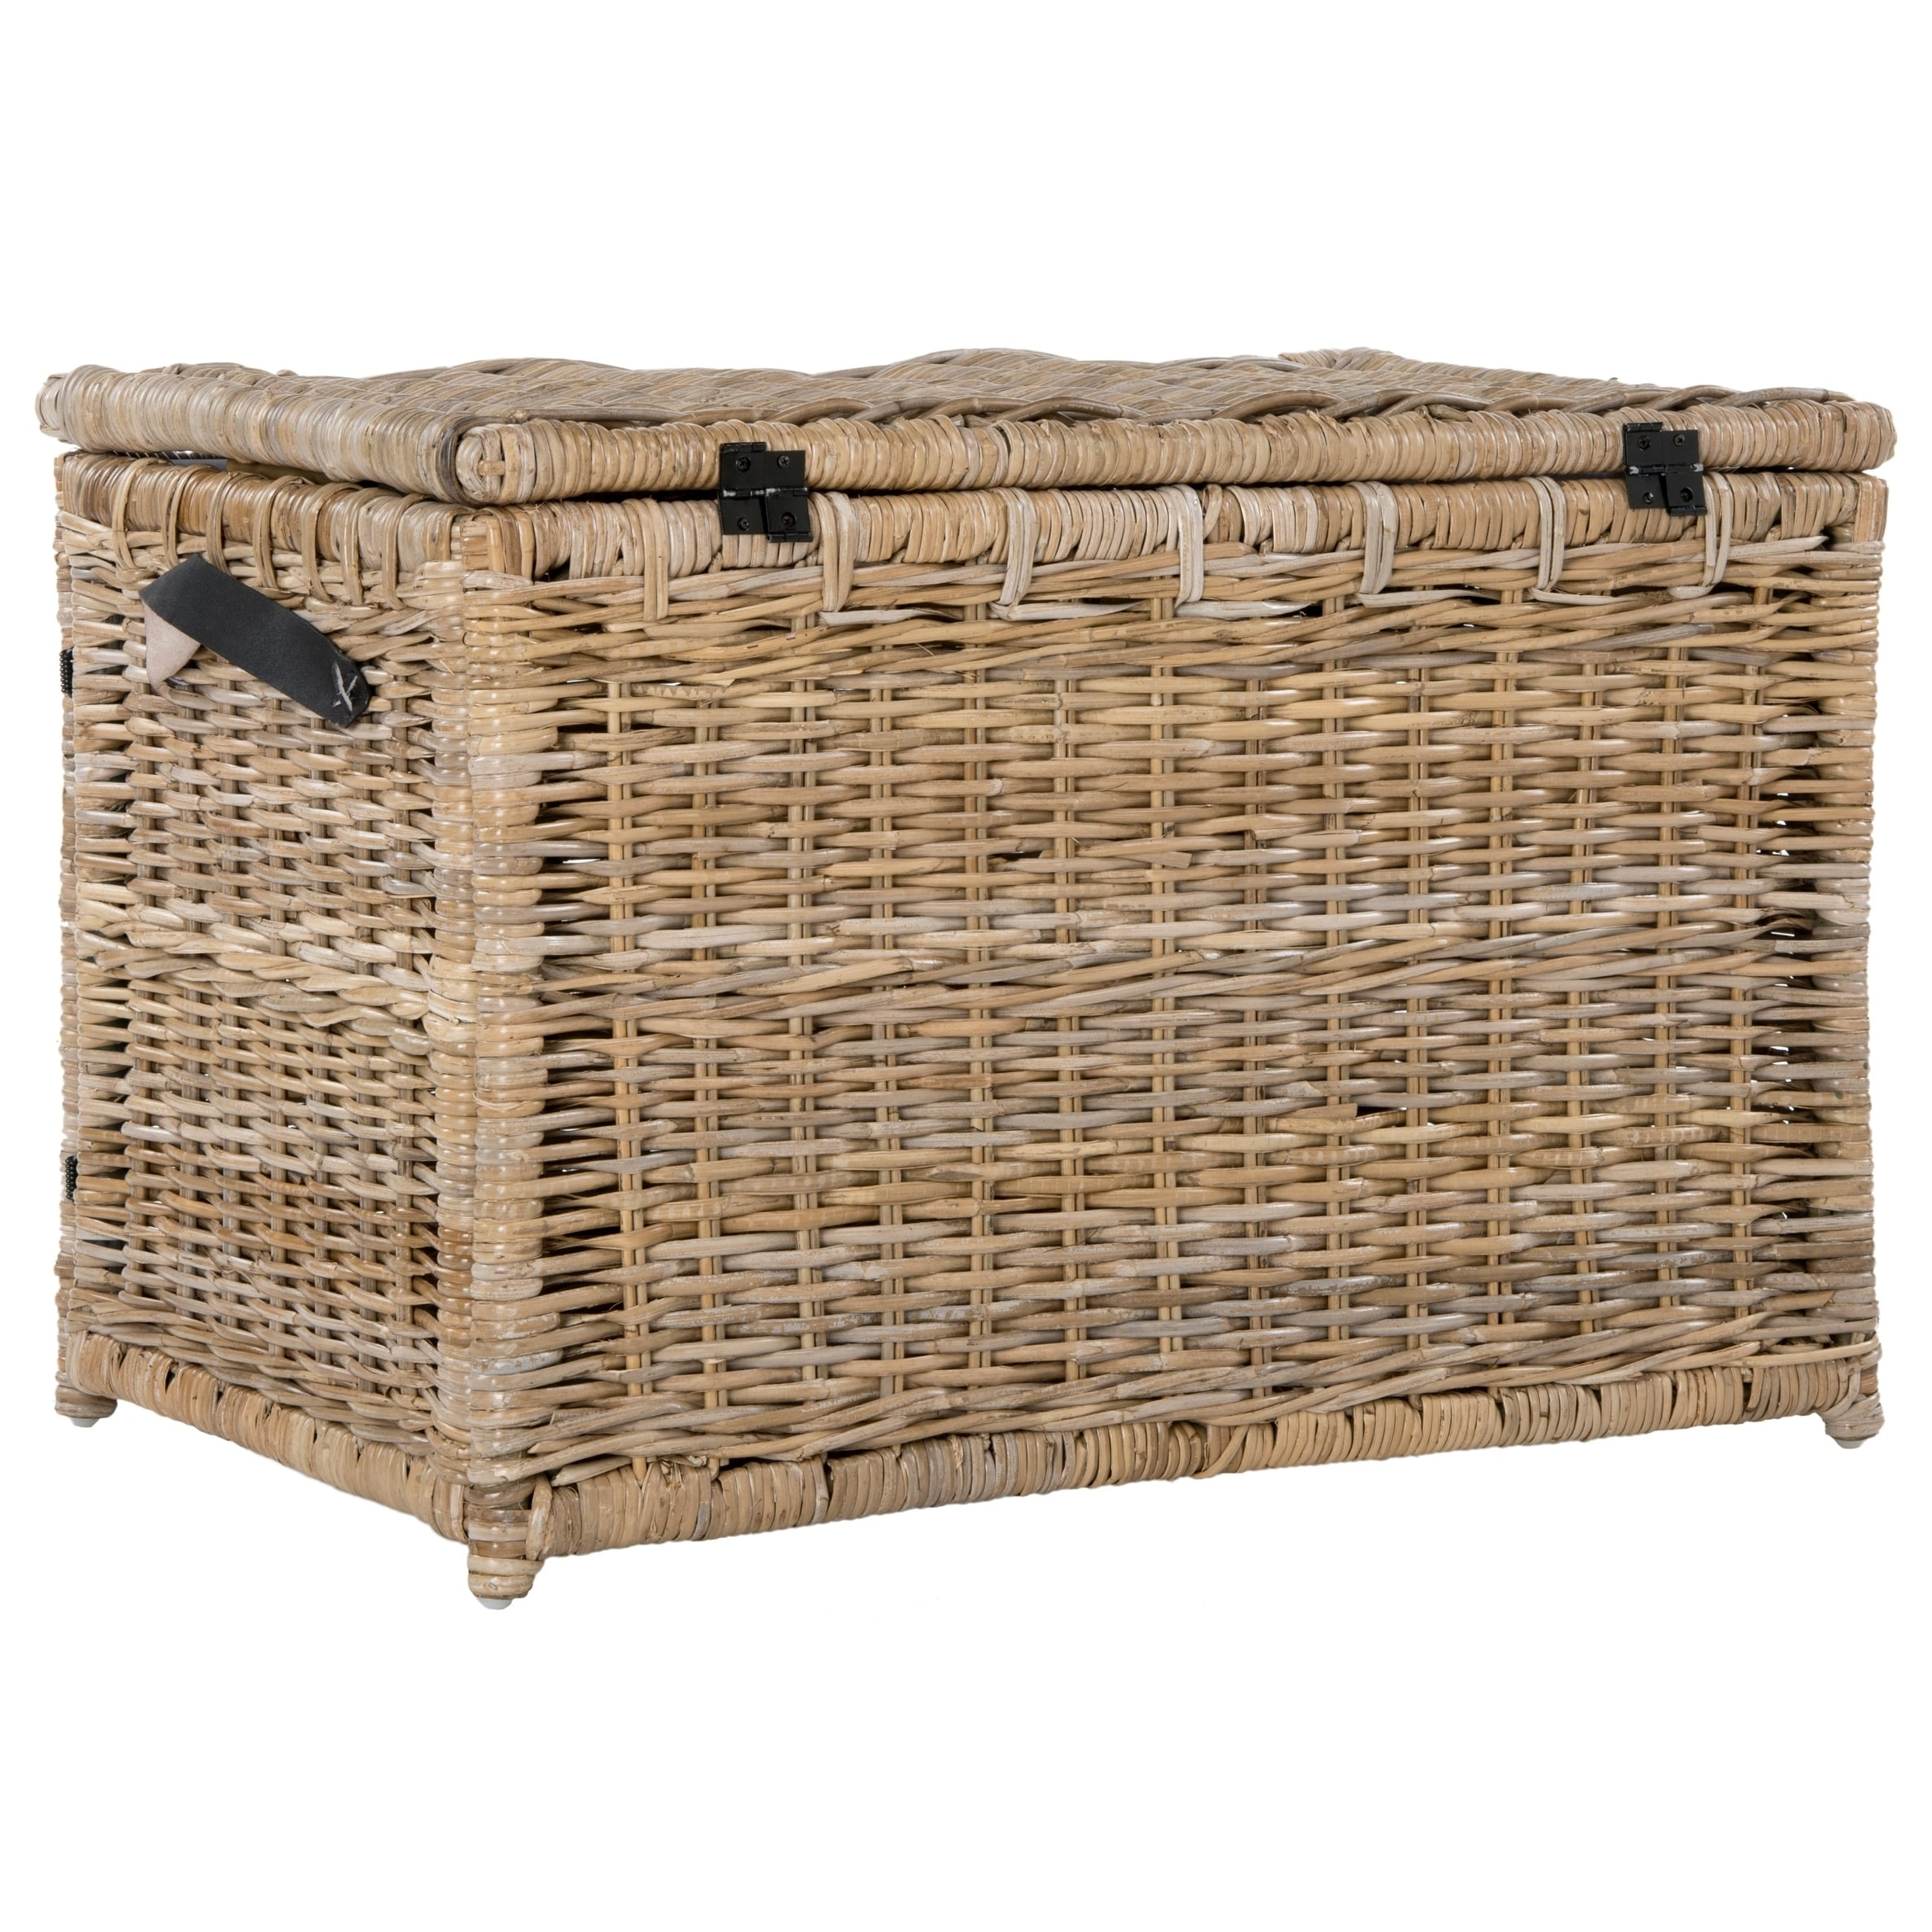 Shop happimess Michael 35  Wicker Storage Trunk Gray - Free Shipping Today - Overstock.com - 17818379  sc 1 st  Overstock.com & Shop happimess Michael 35